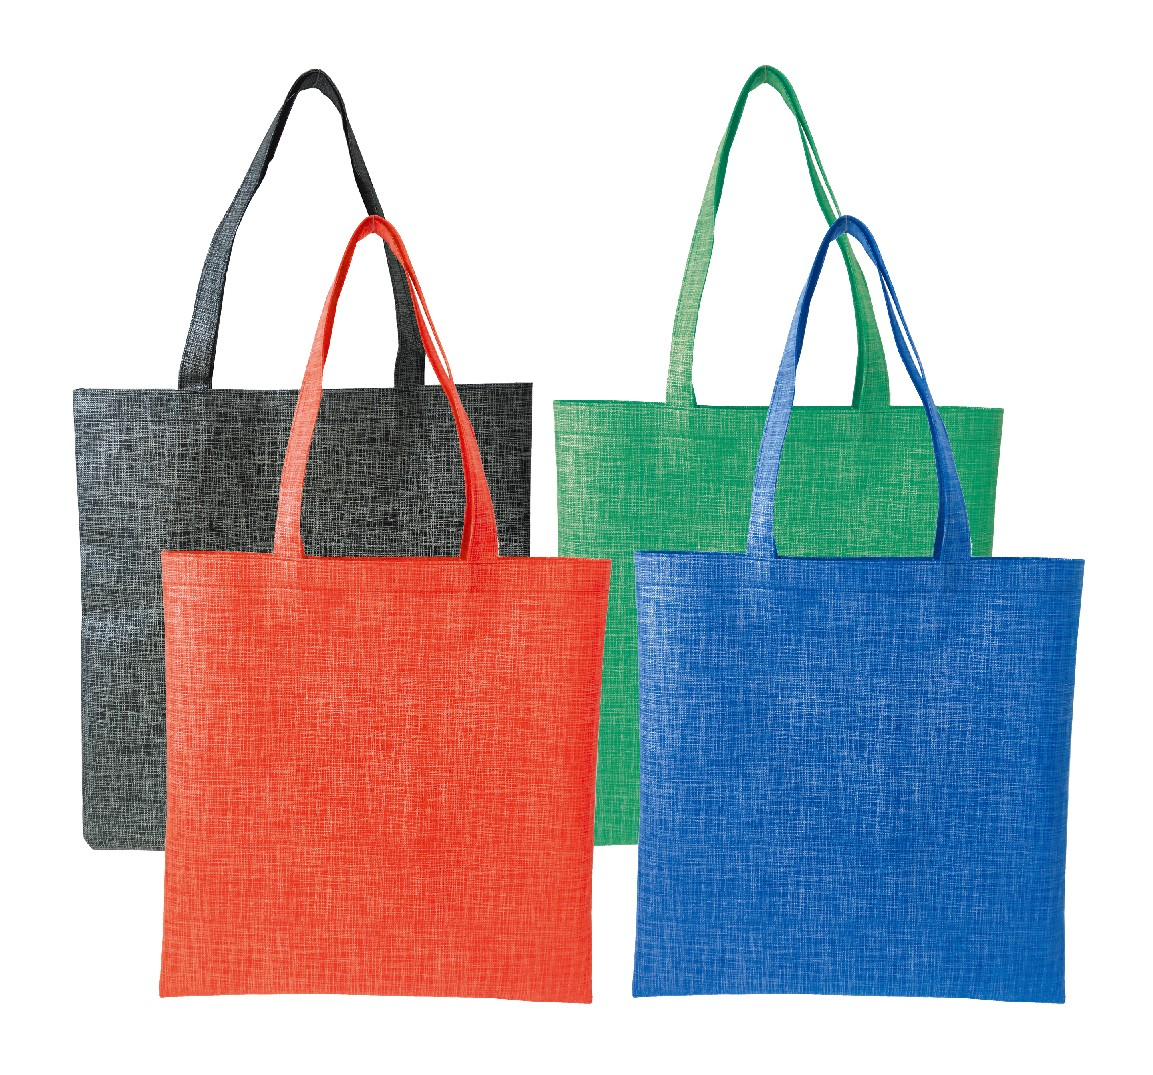 Wholesale Wholesale shopping pp non woven bag customized printing bulk bag, Wholesale shopping pp non woven bag customized printing bulk bag Manufacturers, Wholesale shopping pp non woven bag customized printing bulk bag Producers